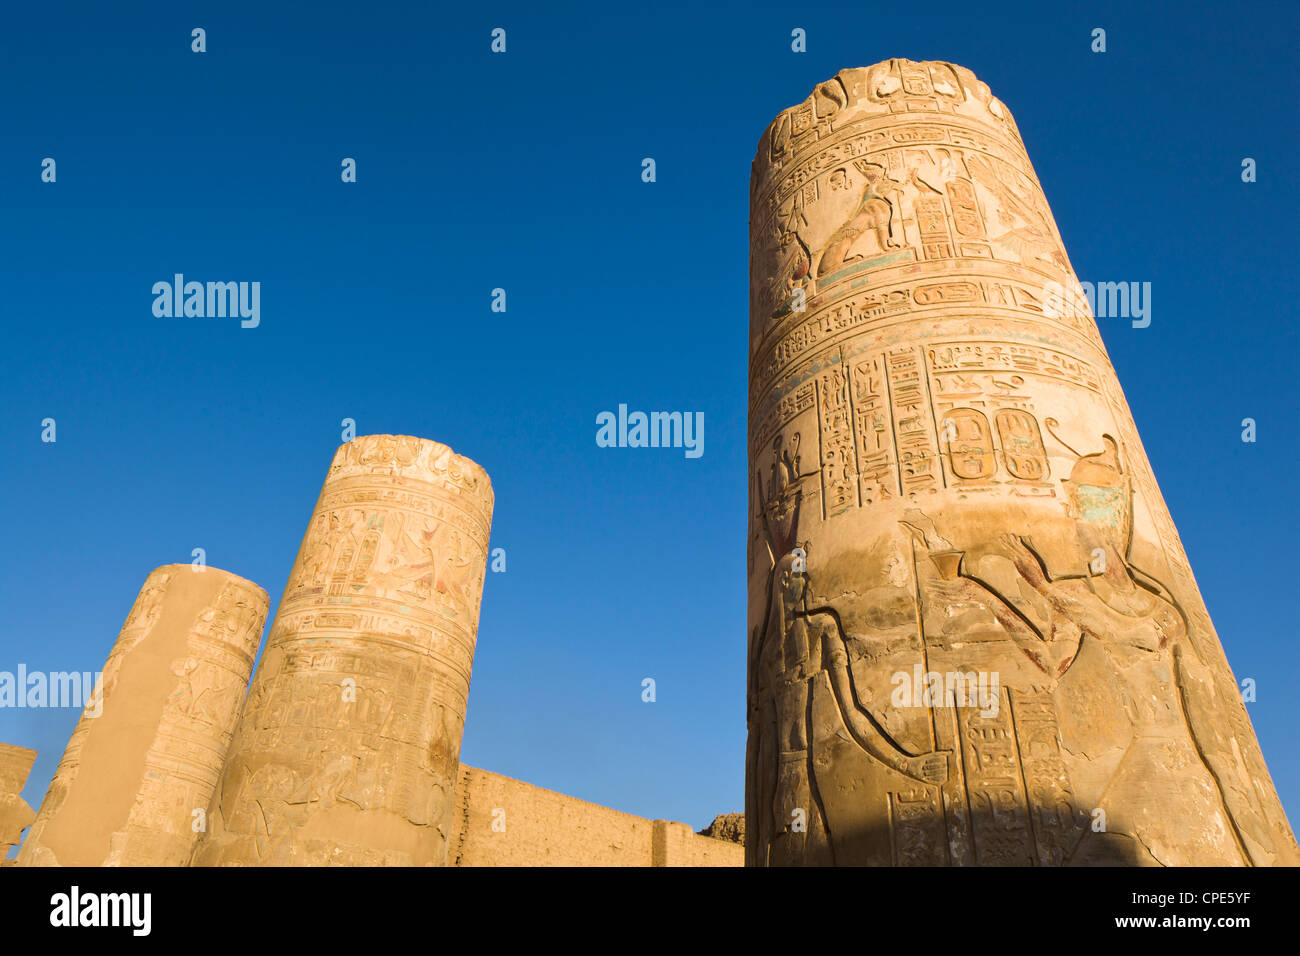 Painted pillars at the Temple of Sobek and Haroeris, Kom Ombo, Egypt, North Africa, Africa Stock Photo